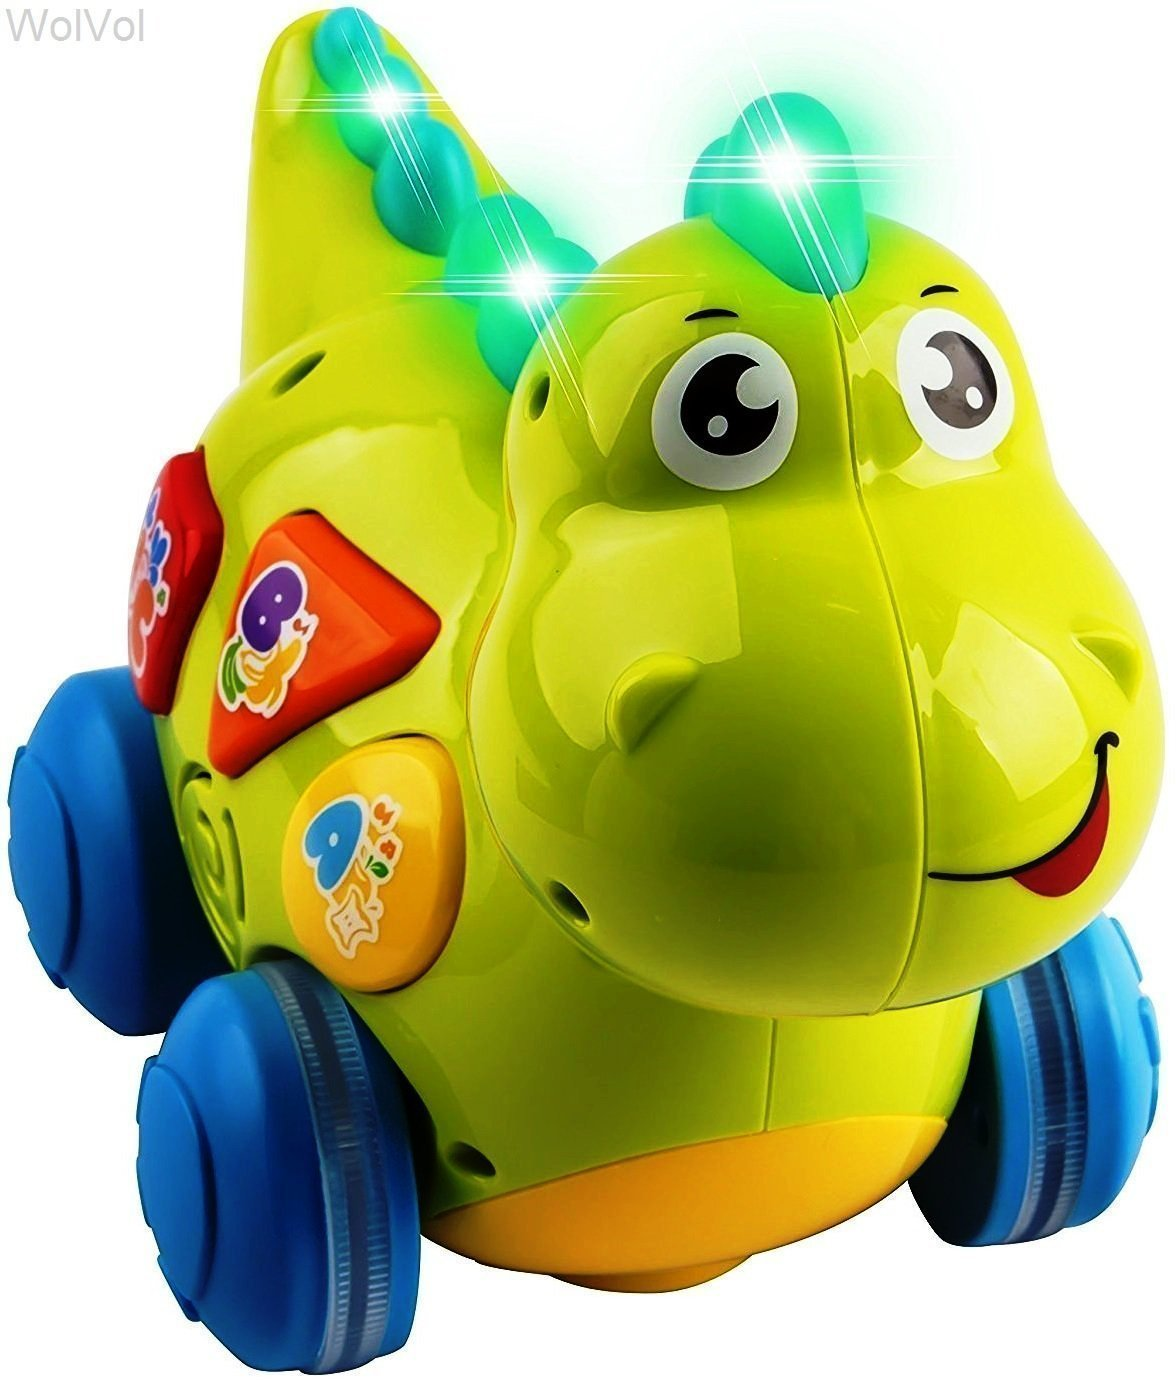 WolVol Talking Dinosaur Toy with Lights and Sounds for Kids - Teaching, Learning, Activity, Walking & Fun Action by WolVol